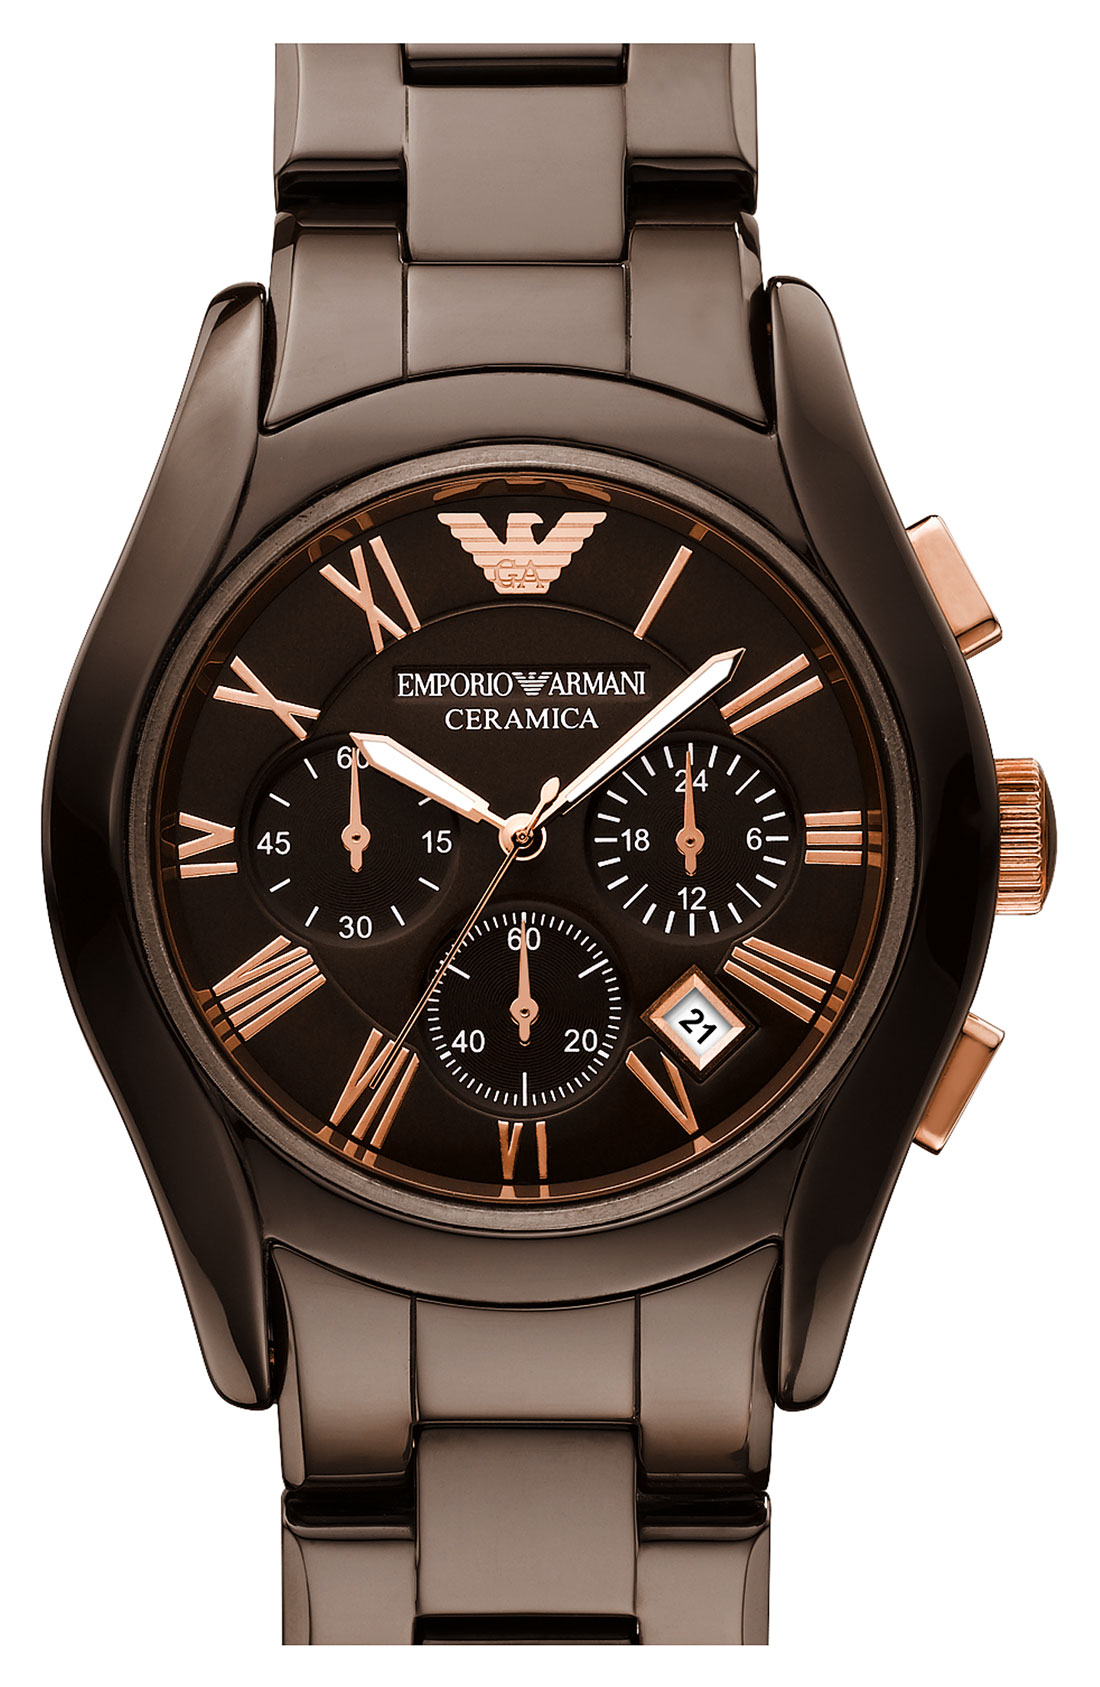 emporio armani ceramic watch in brown for men lyst gallery